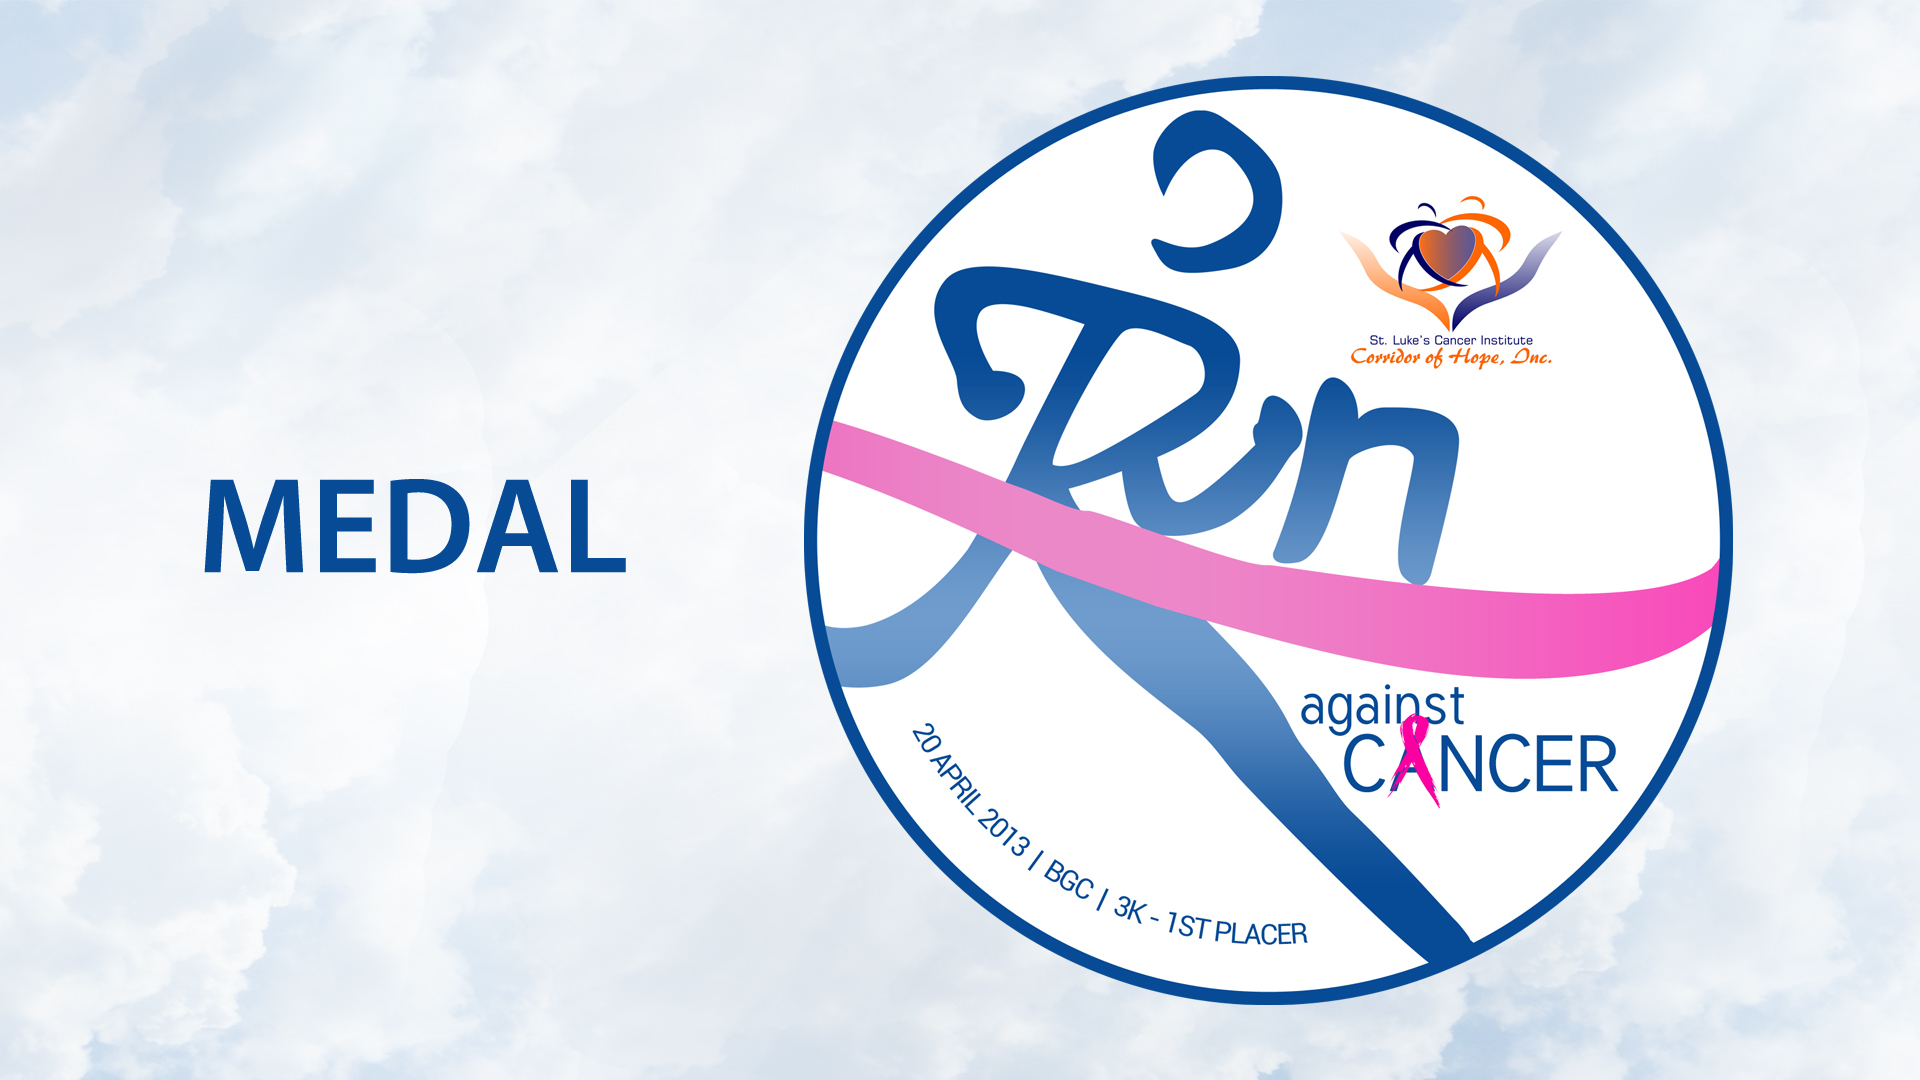 run-against-cancer-2013-medal-design